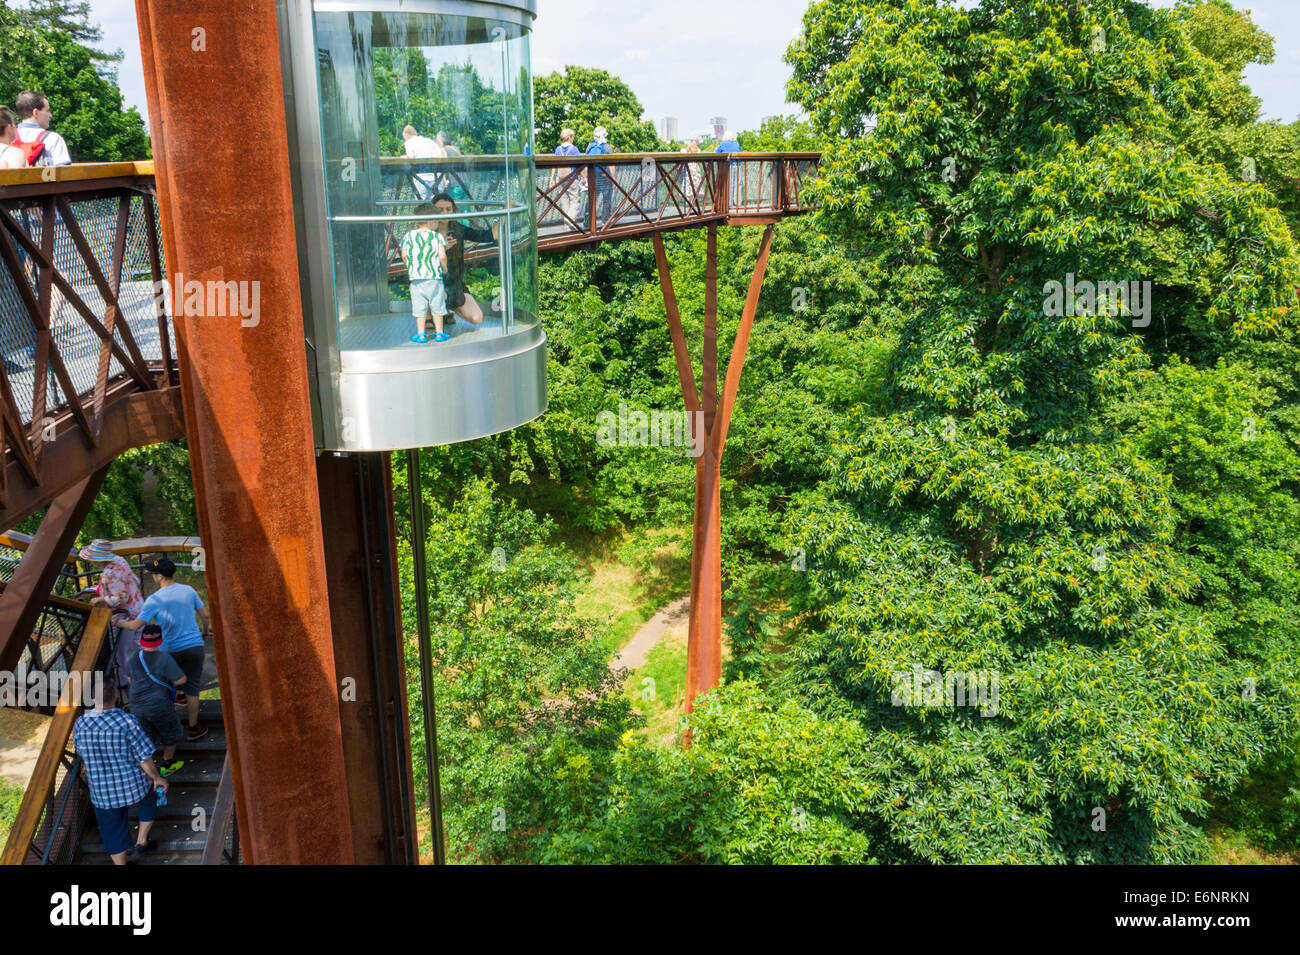 Rhizotron et Xstrata Treetop Walkway Kew Gardens Londres Angleterre Royaume-uni GB EU Europe Photo Stock